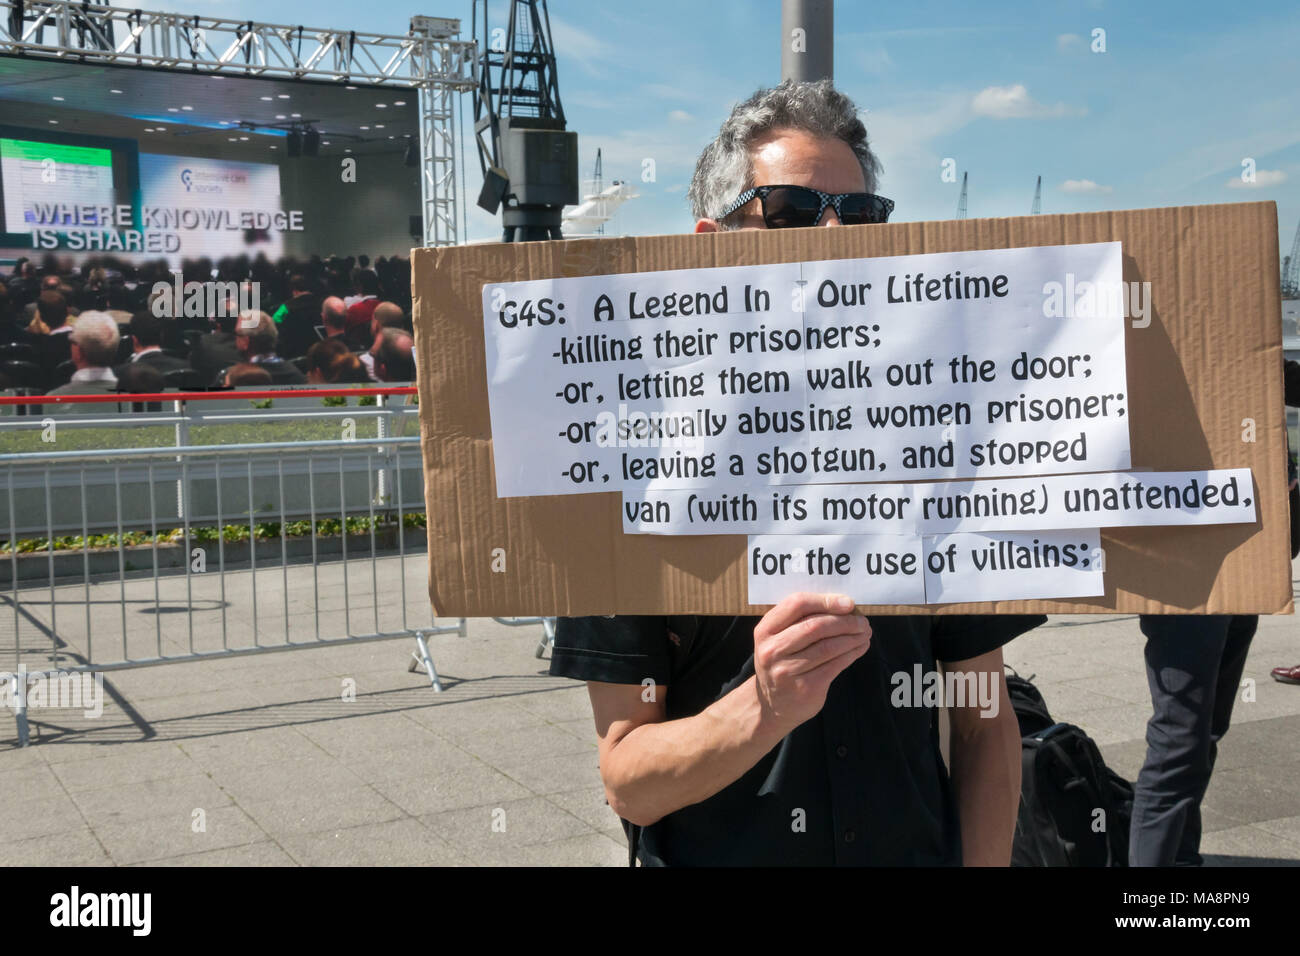 A man holds a poster listing a few of the faults of G4S, including killing prisoners, letting them escape, sexually abusing them and more at Stop G4S protest outside G4S AGM at Excel London. Stock Photo